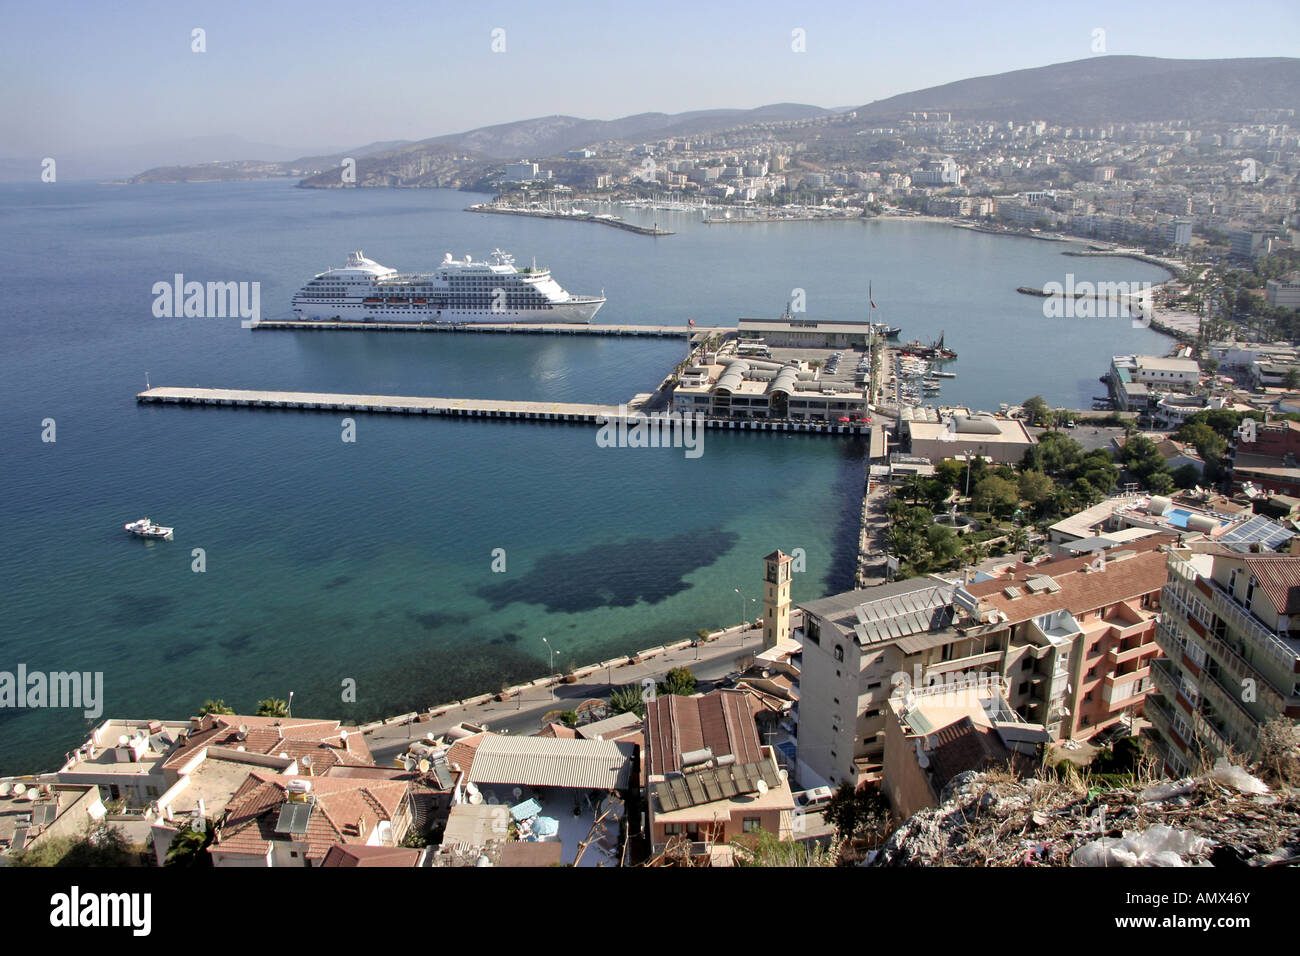 view of Kusadasi habour with cruise liner Seven Seas Navigator, Turkey, Kusadasi - Stock Image